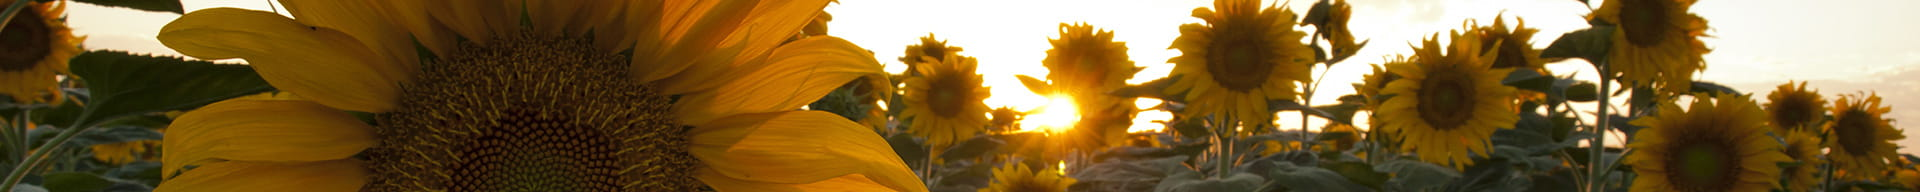 a-field-of-large-sunflowers